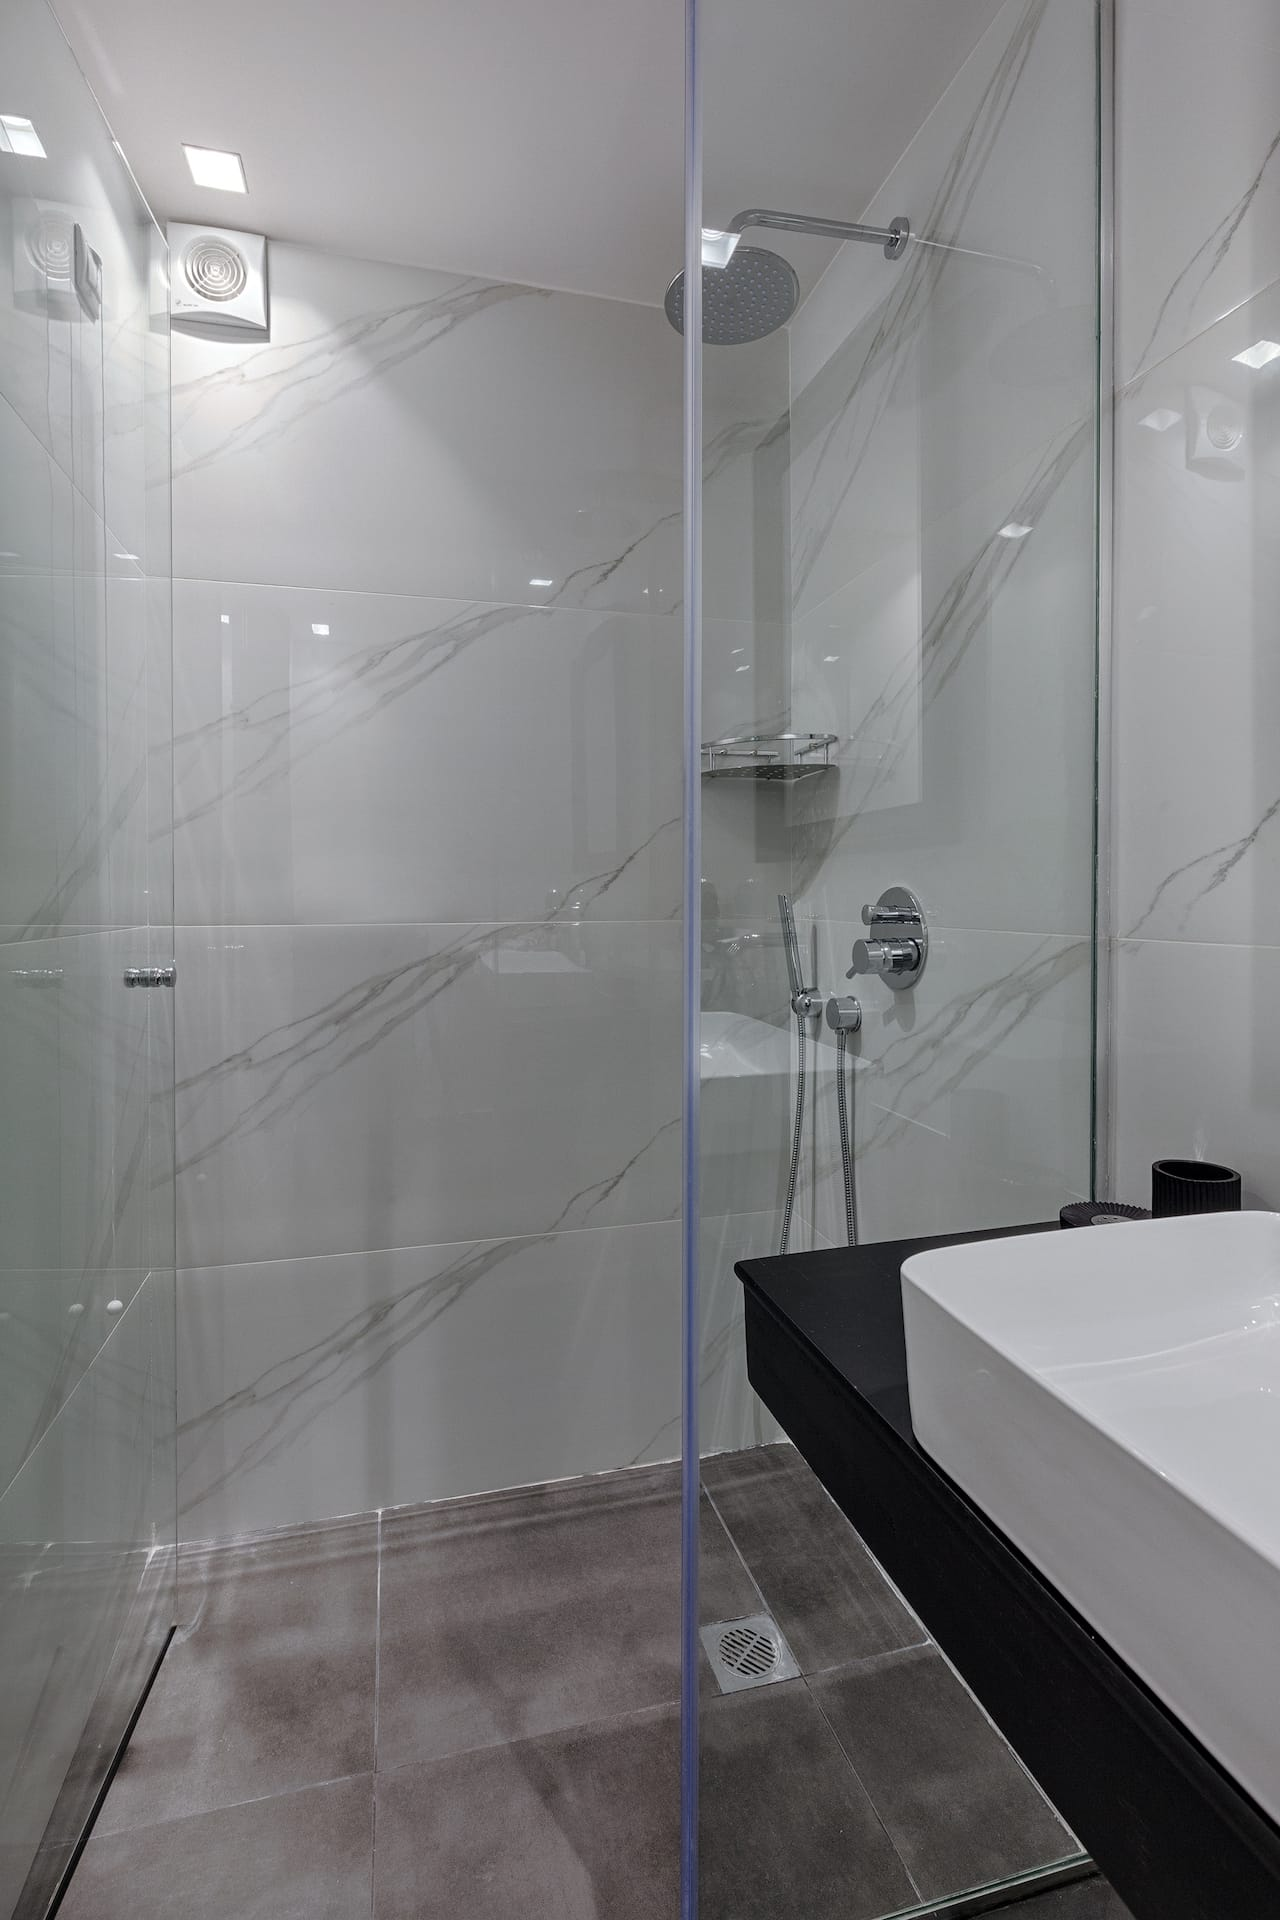 Modern bathrooms, equipped with a large shower with glass screen, basin, mirror and more.